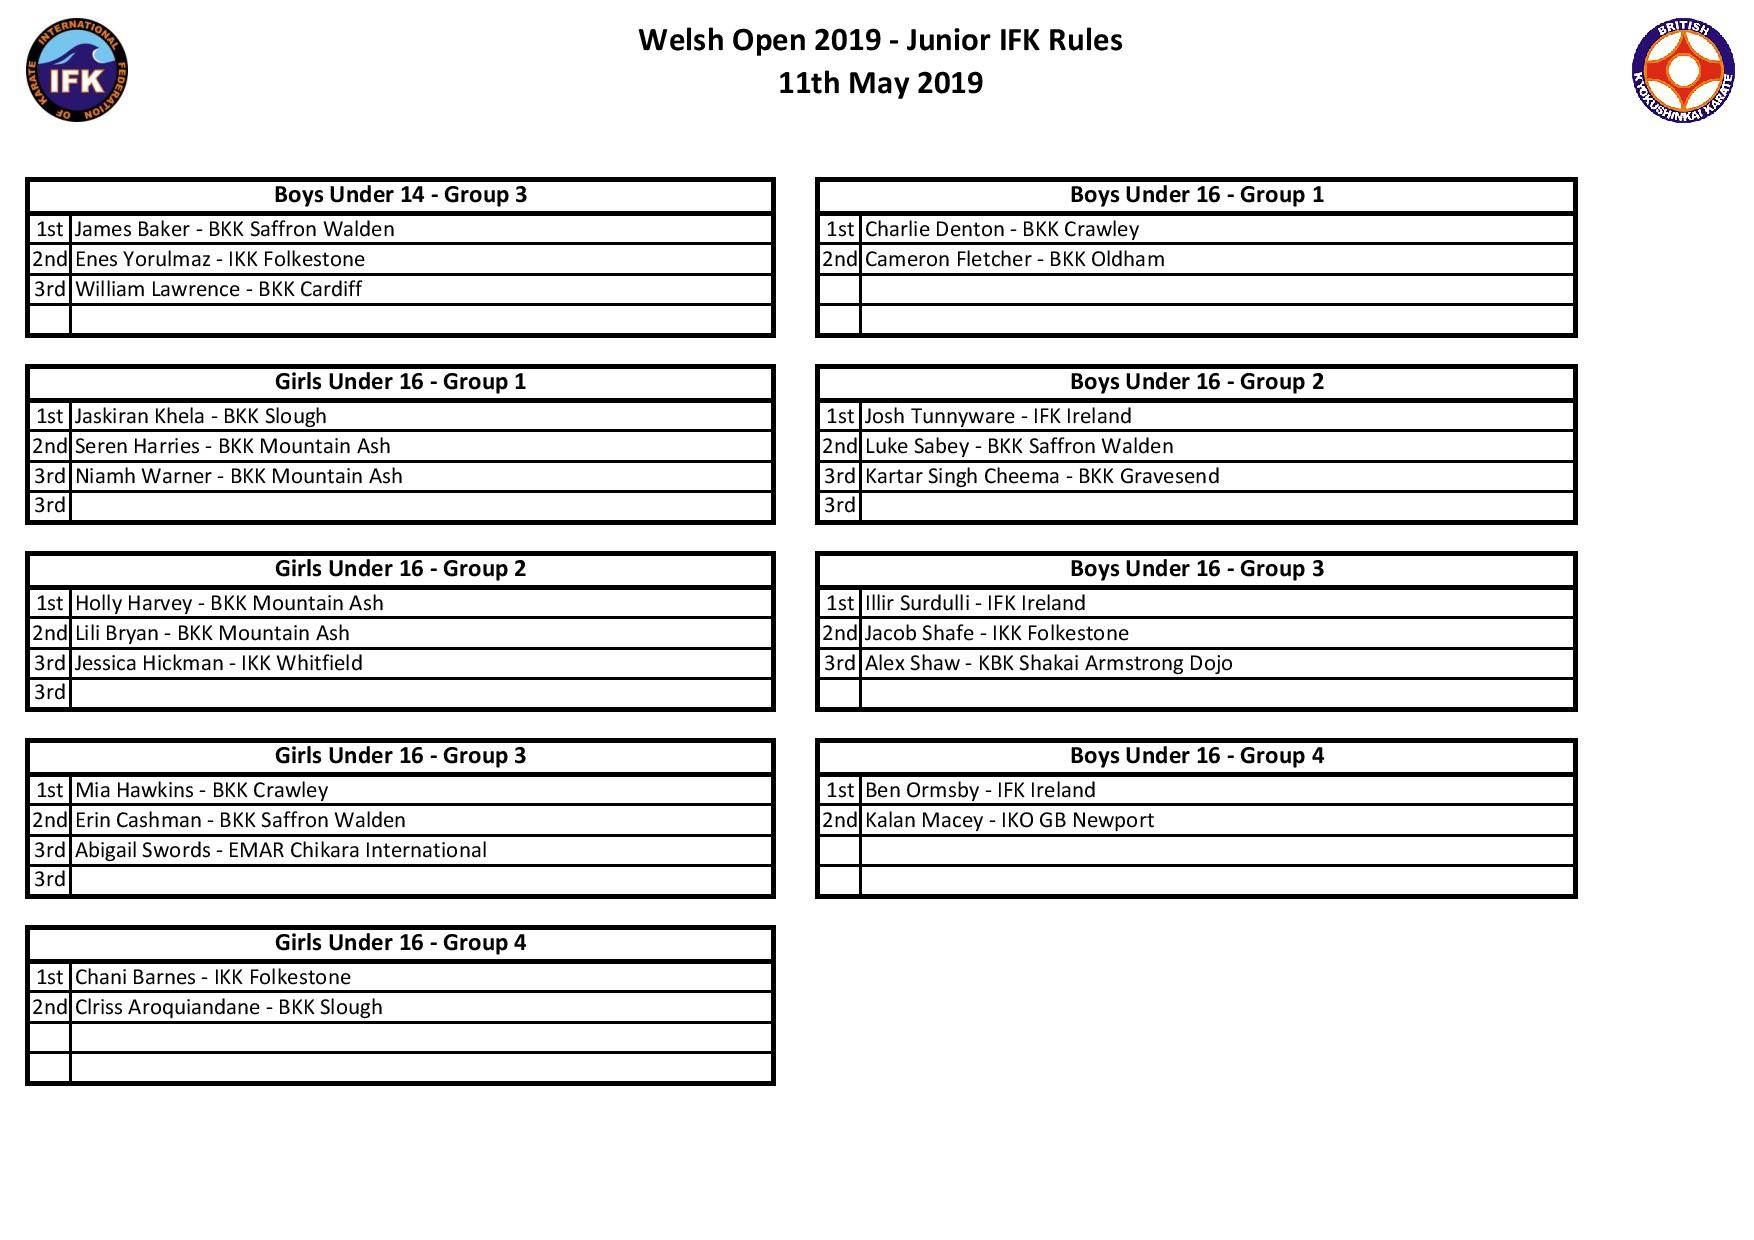 Results Page - Welsh Open 2019 - IFK Rules-page-002.jpg